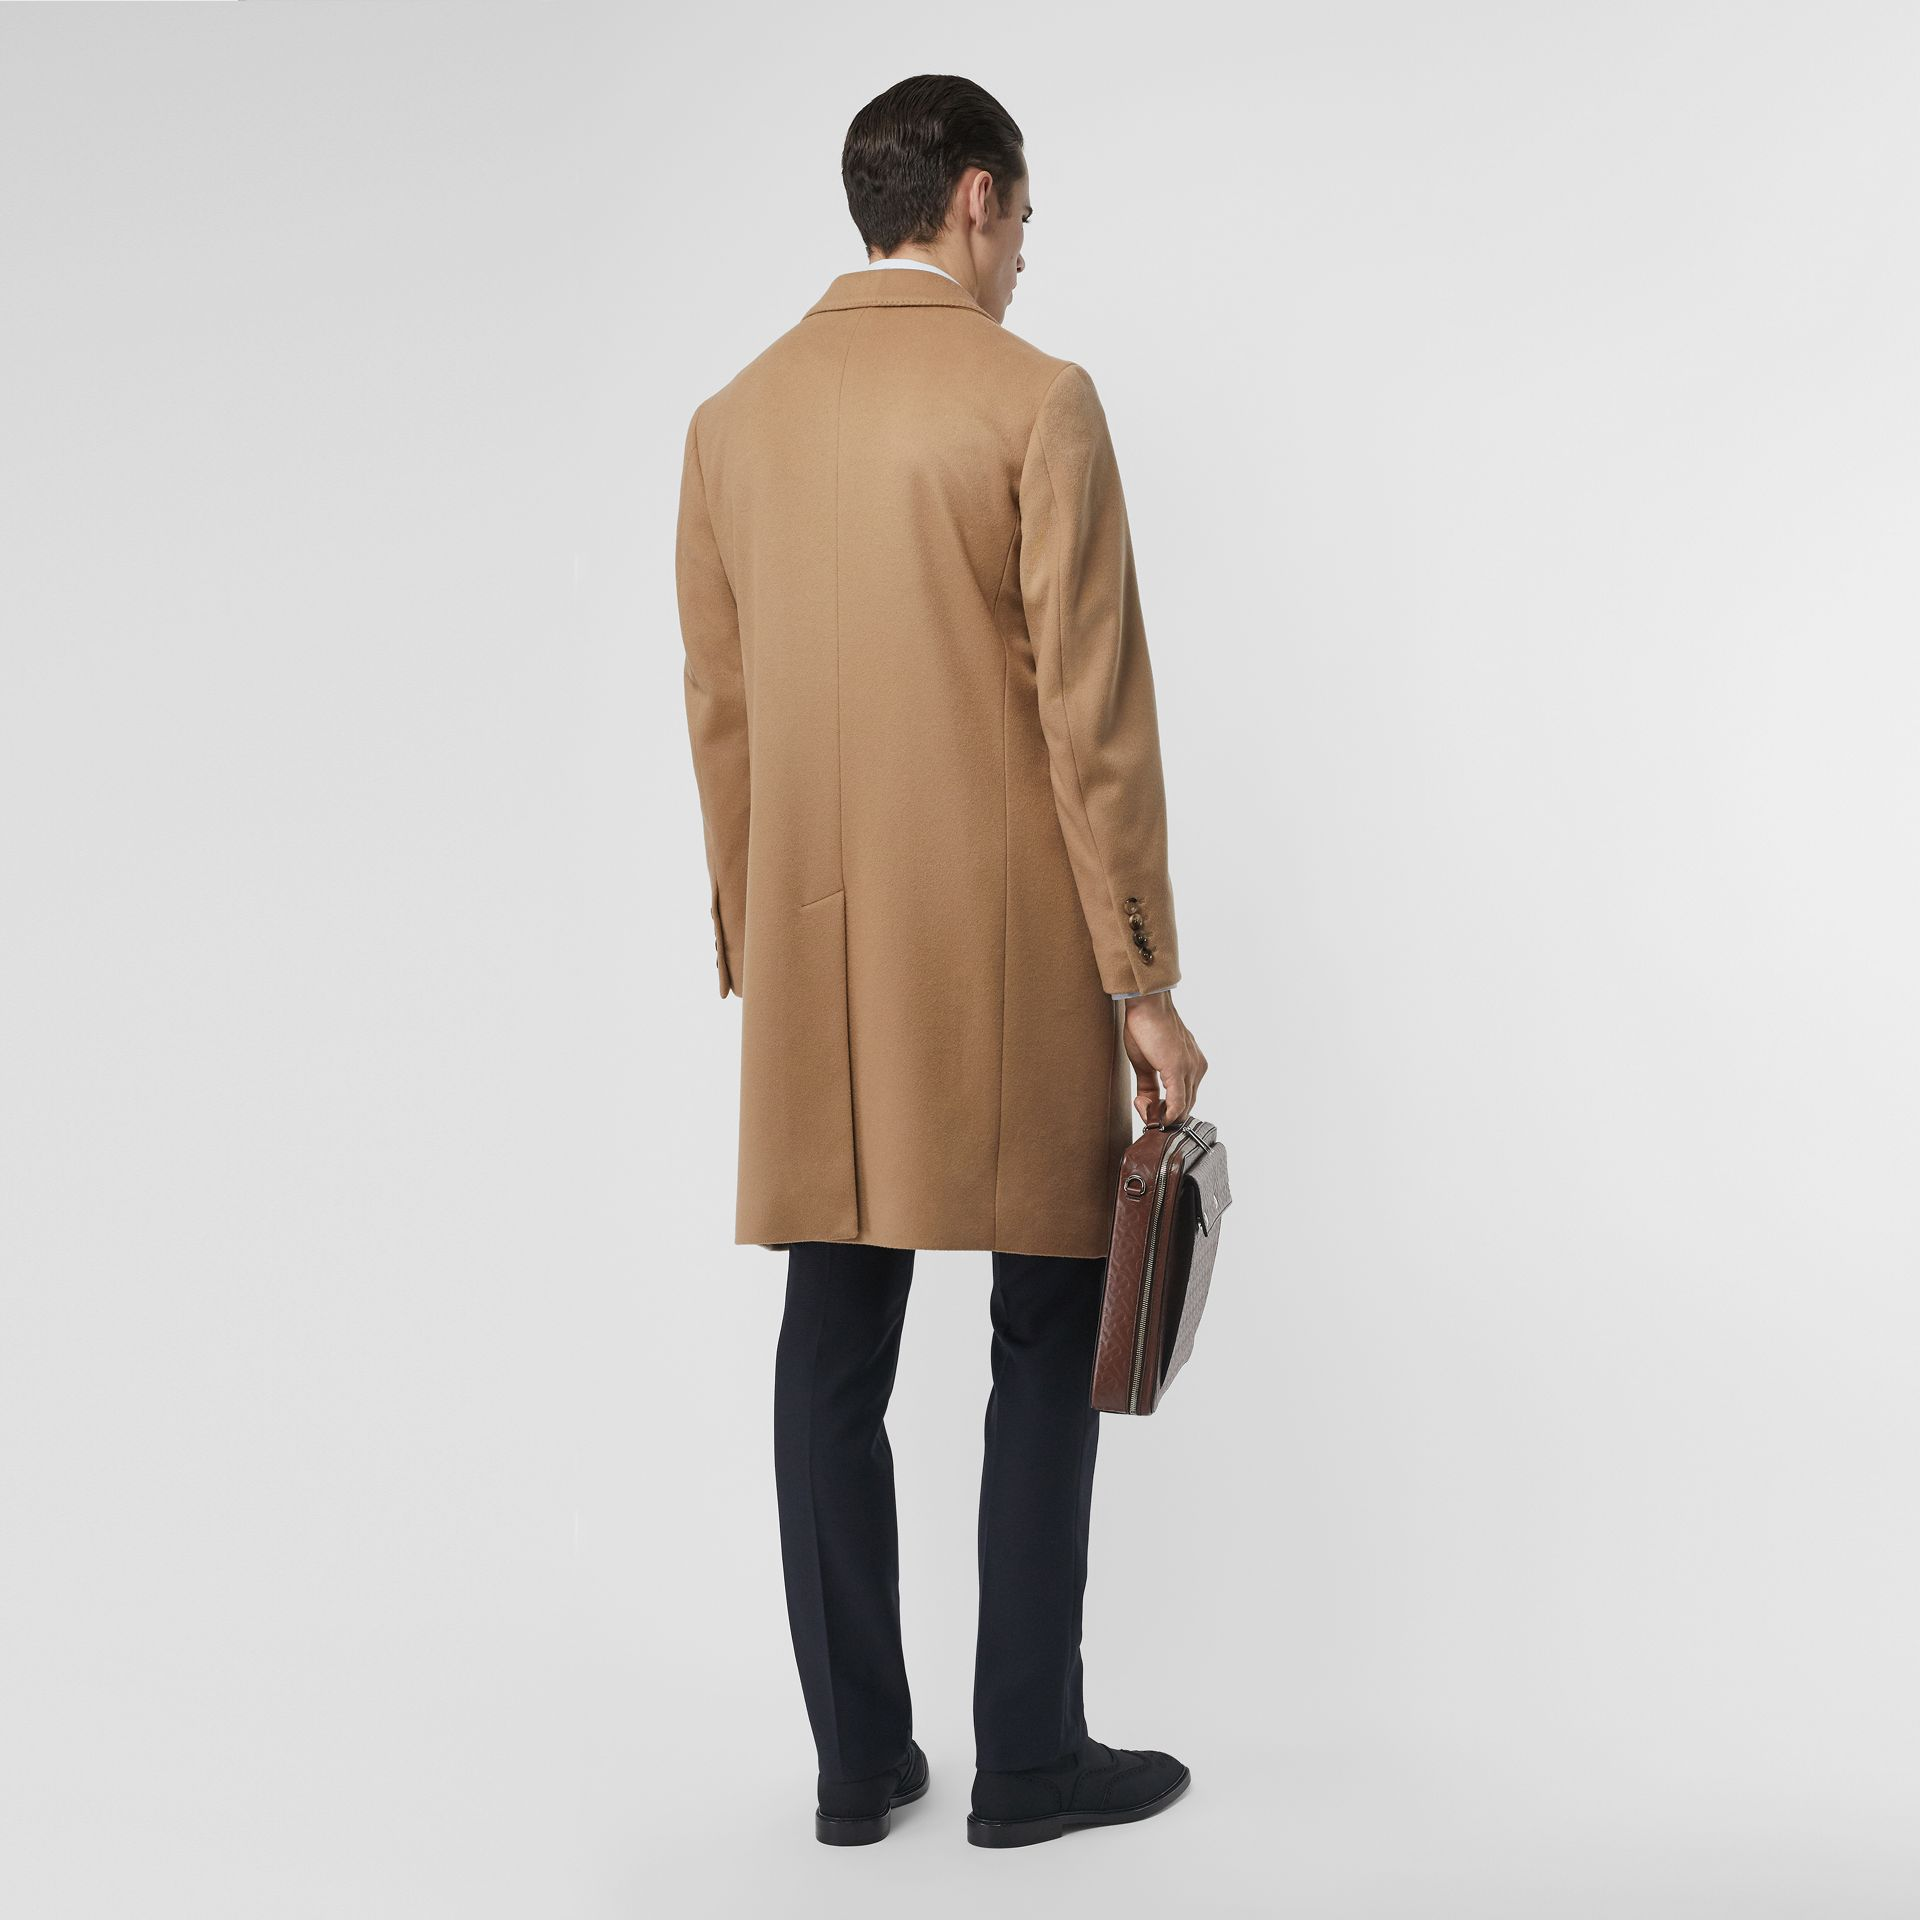 Wool Cashmere Tailored Coat in Camel - Men | Burberry Australia - gallery image 2